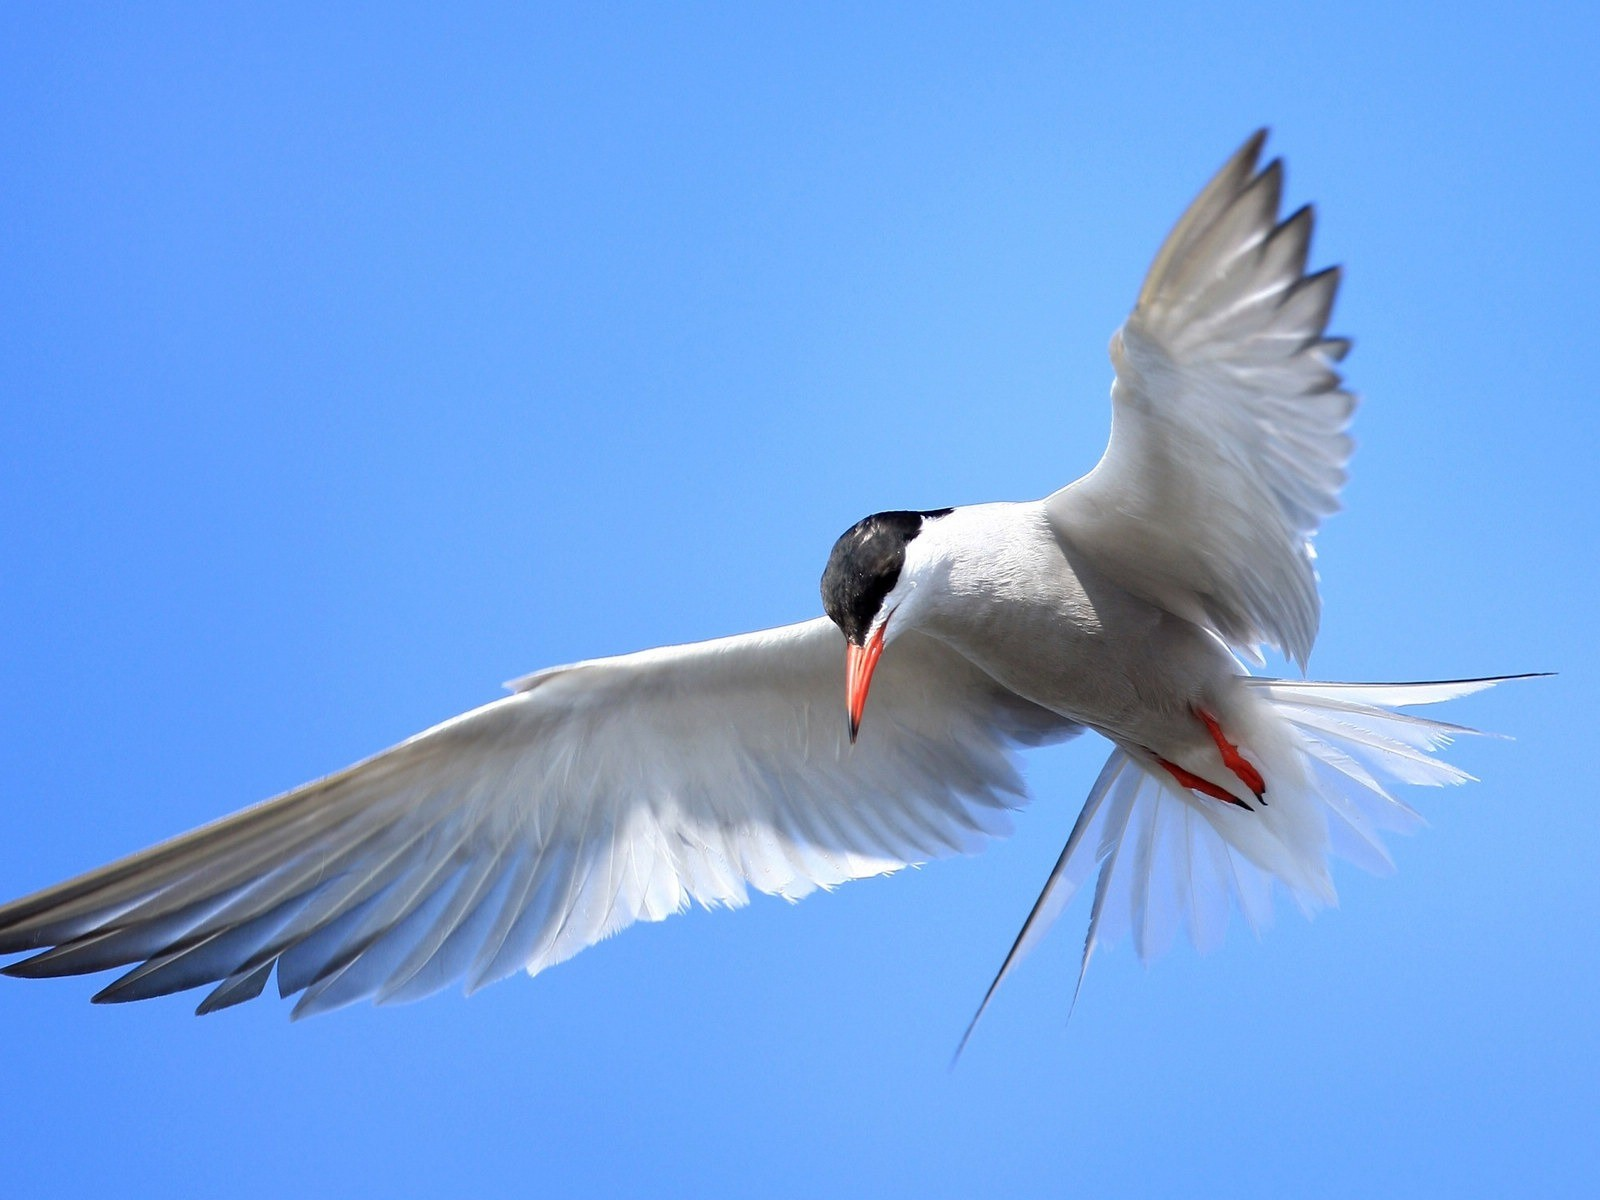 Bird in Flight   Wallpaper 44859 1600x1200